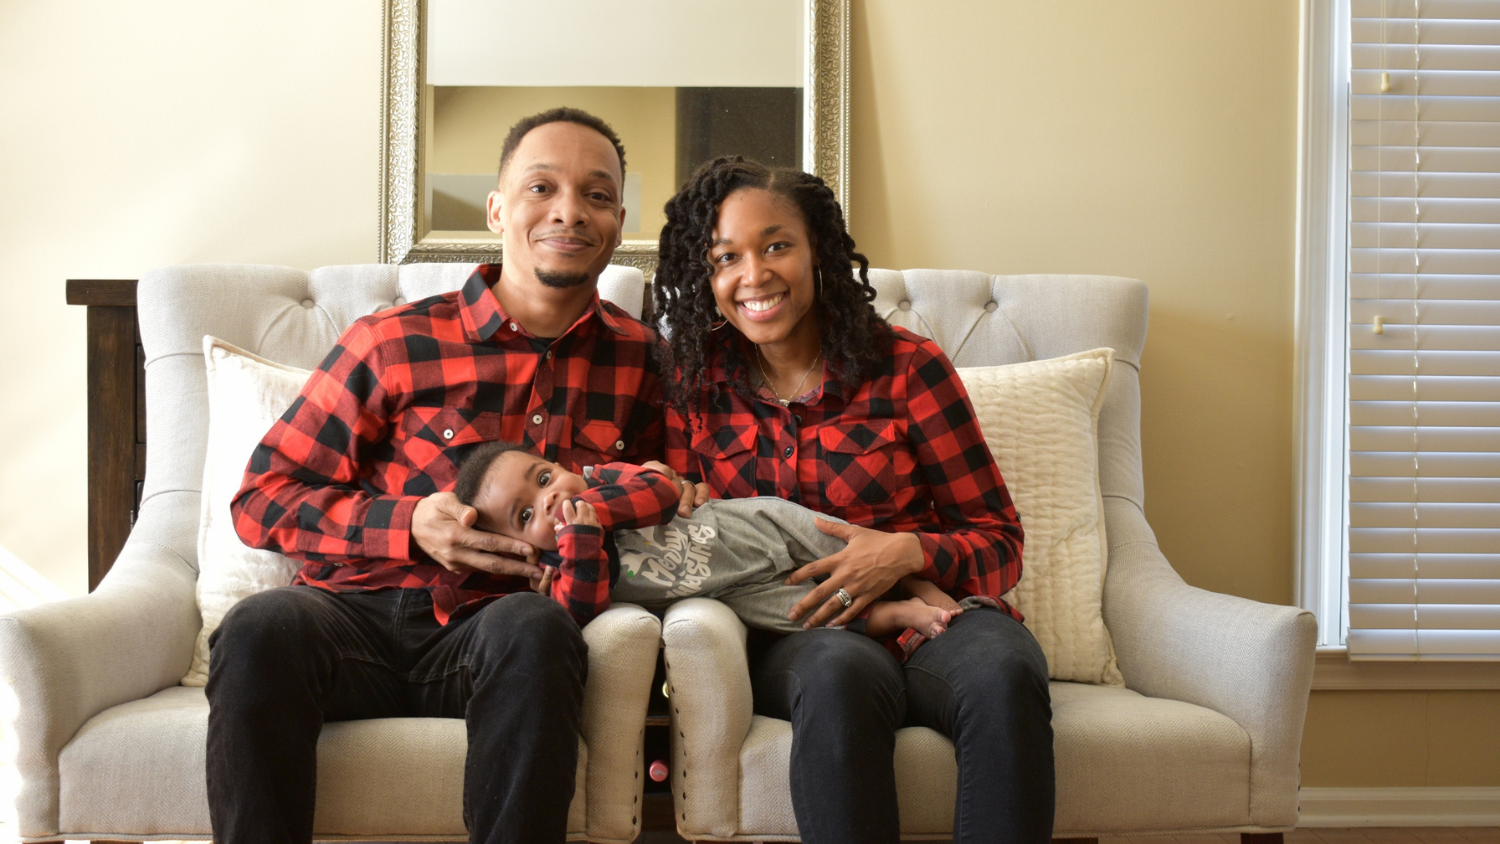 Family Photo - Black Excellence: Instructional Designer James Todd - College of Natural Resources News NC State University